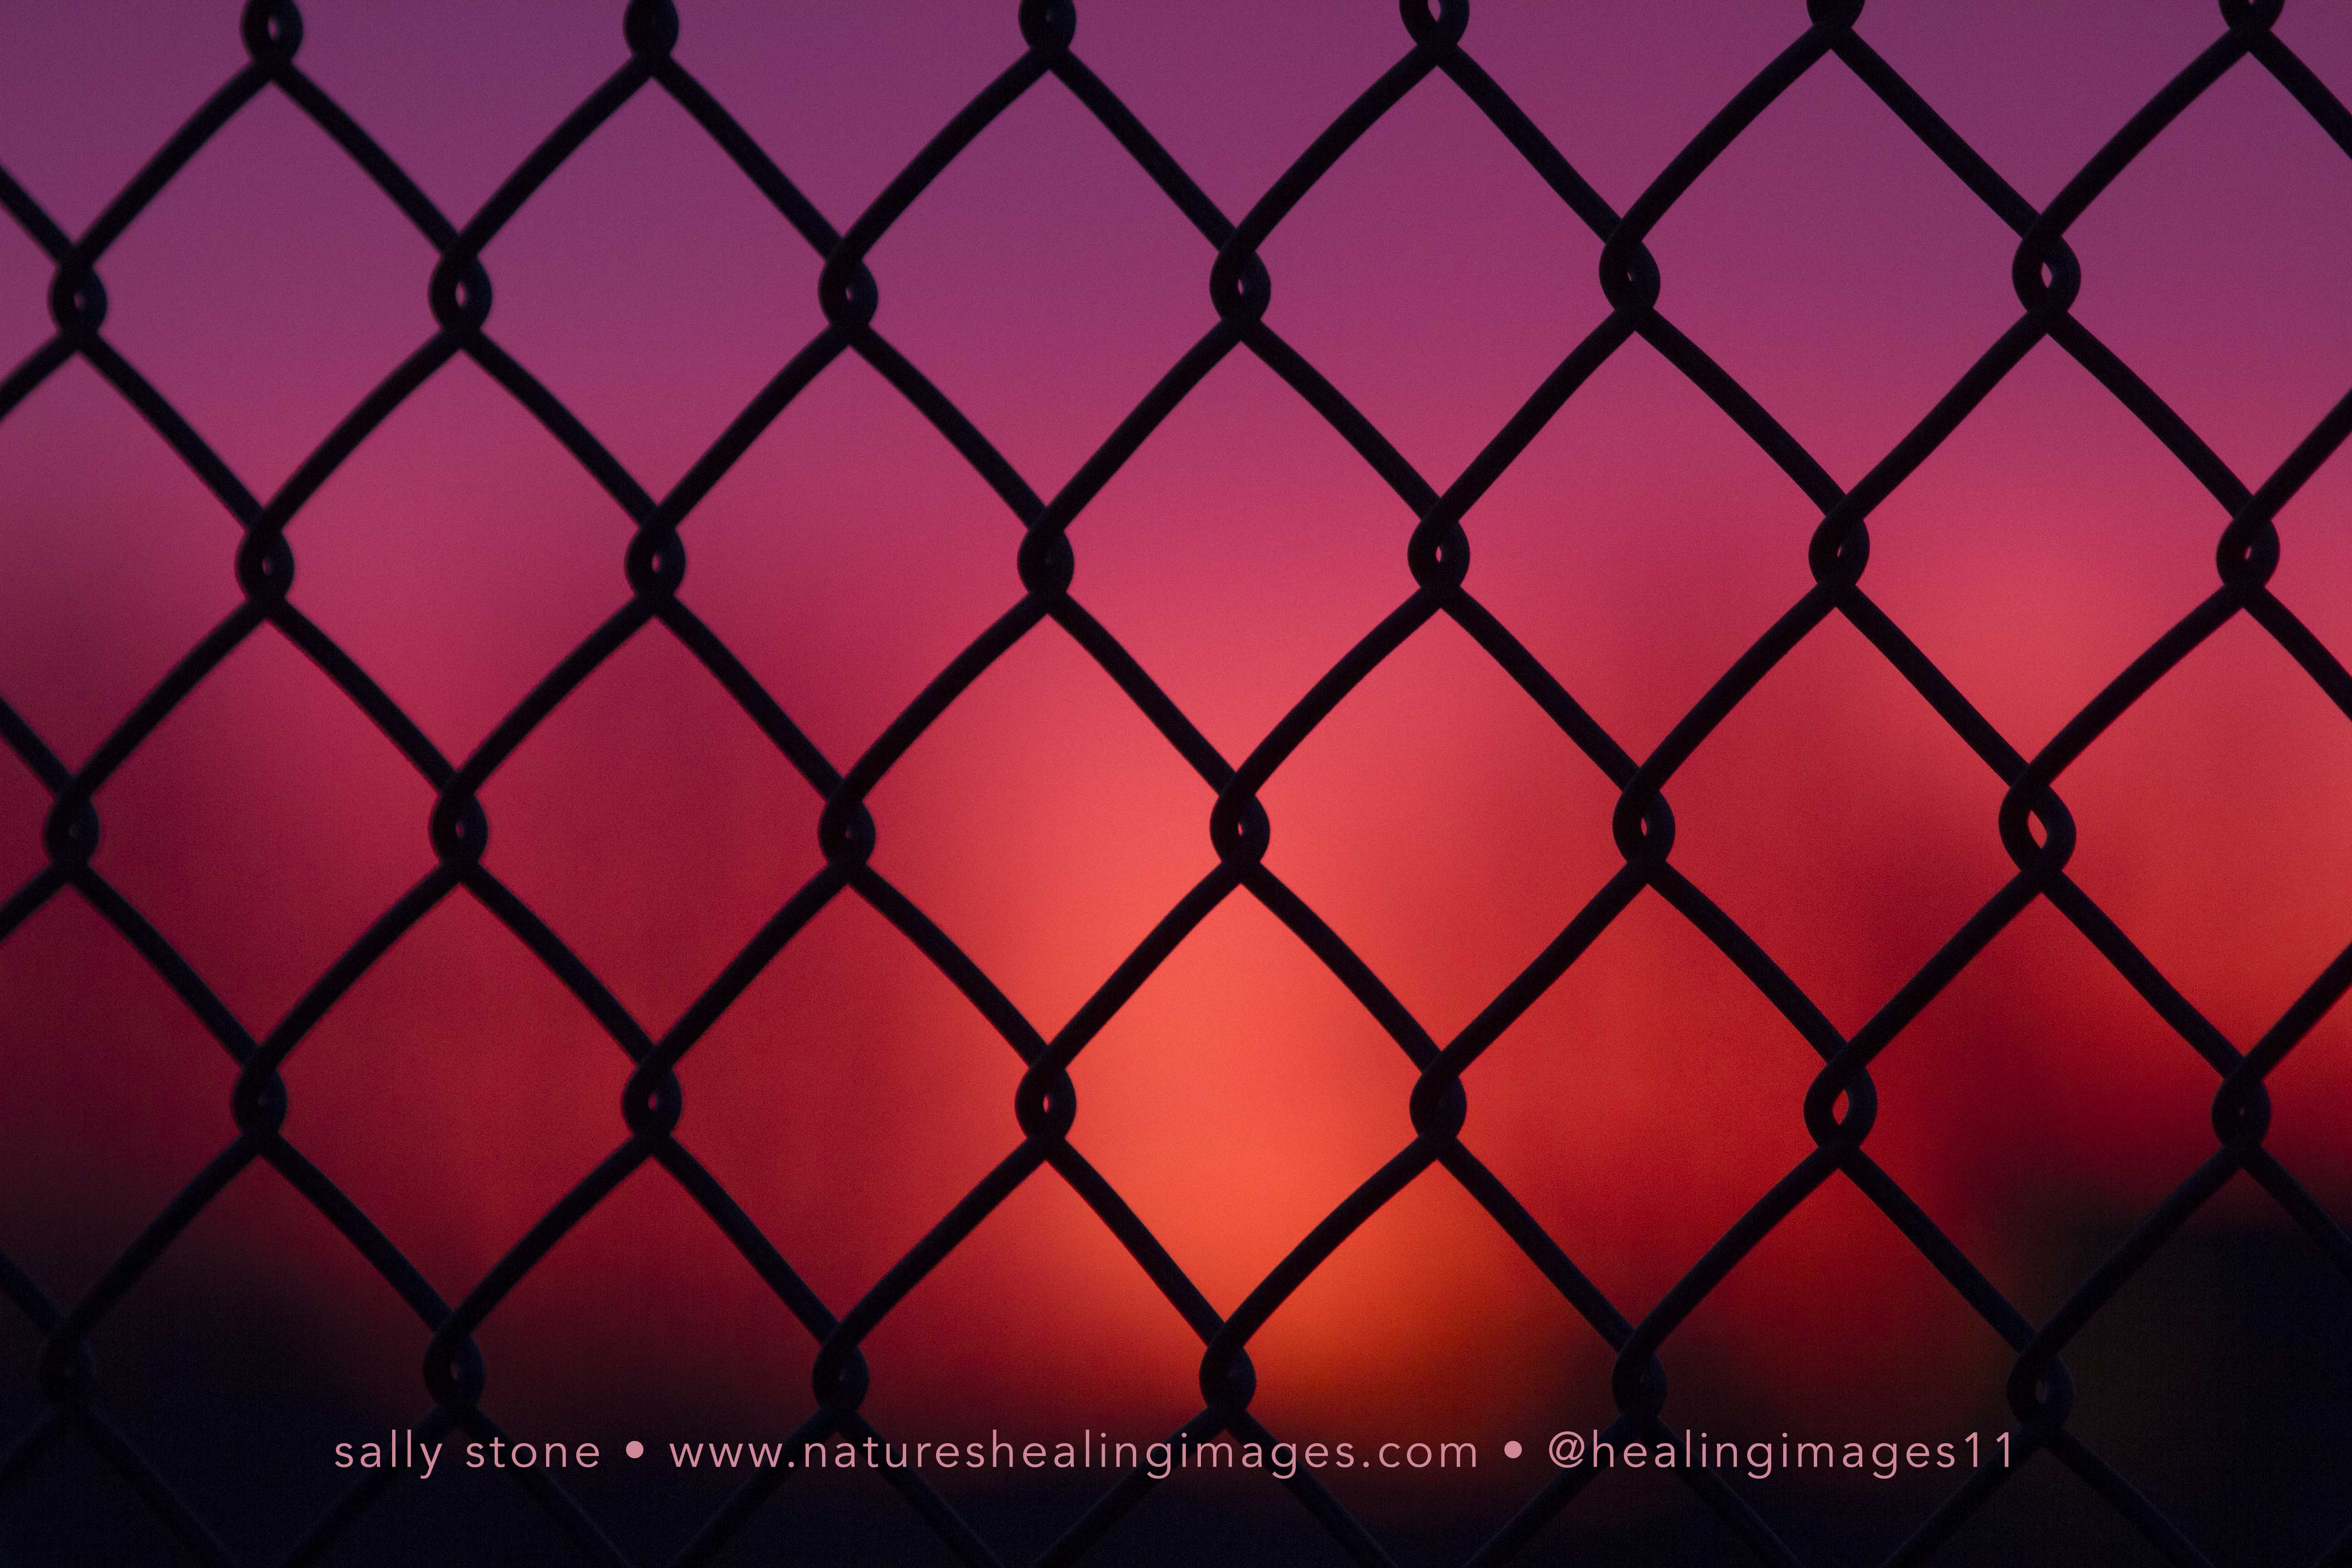 Sunset-through-a-fence